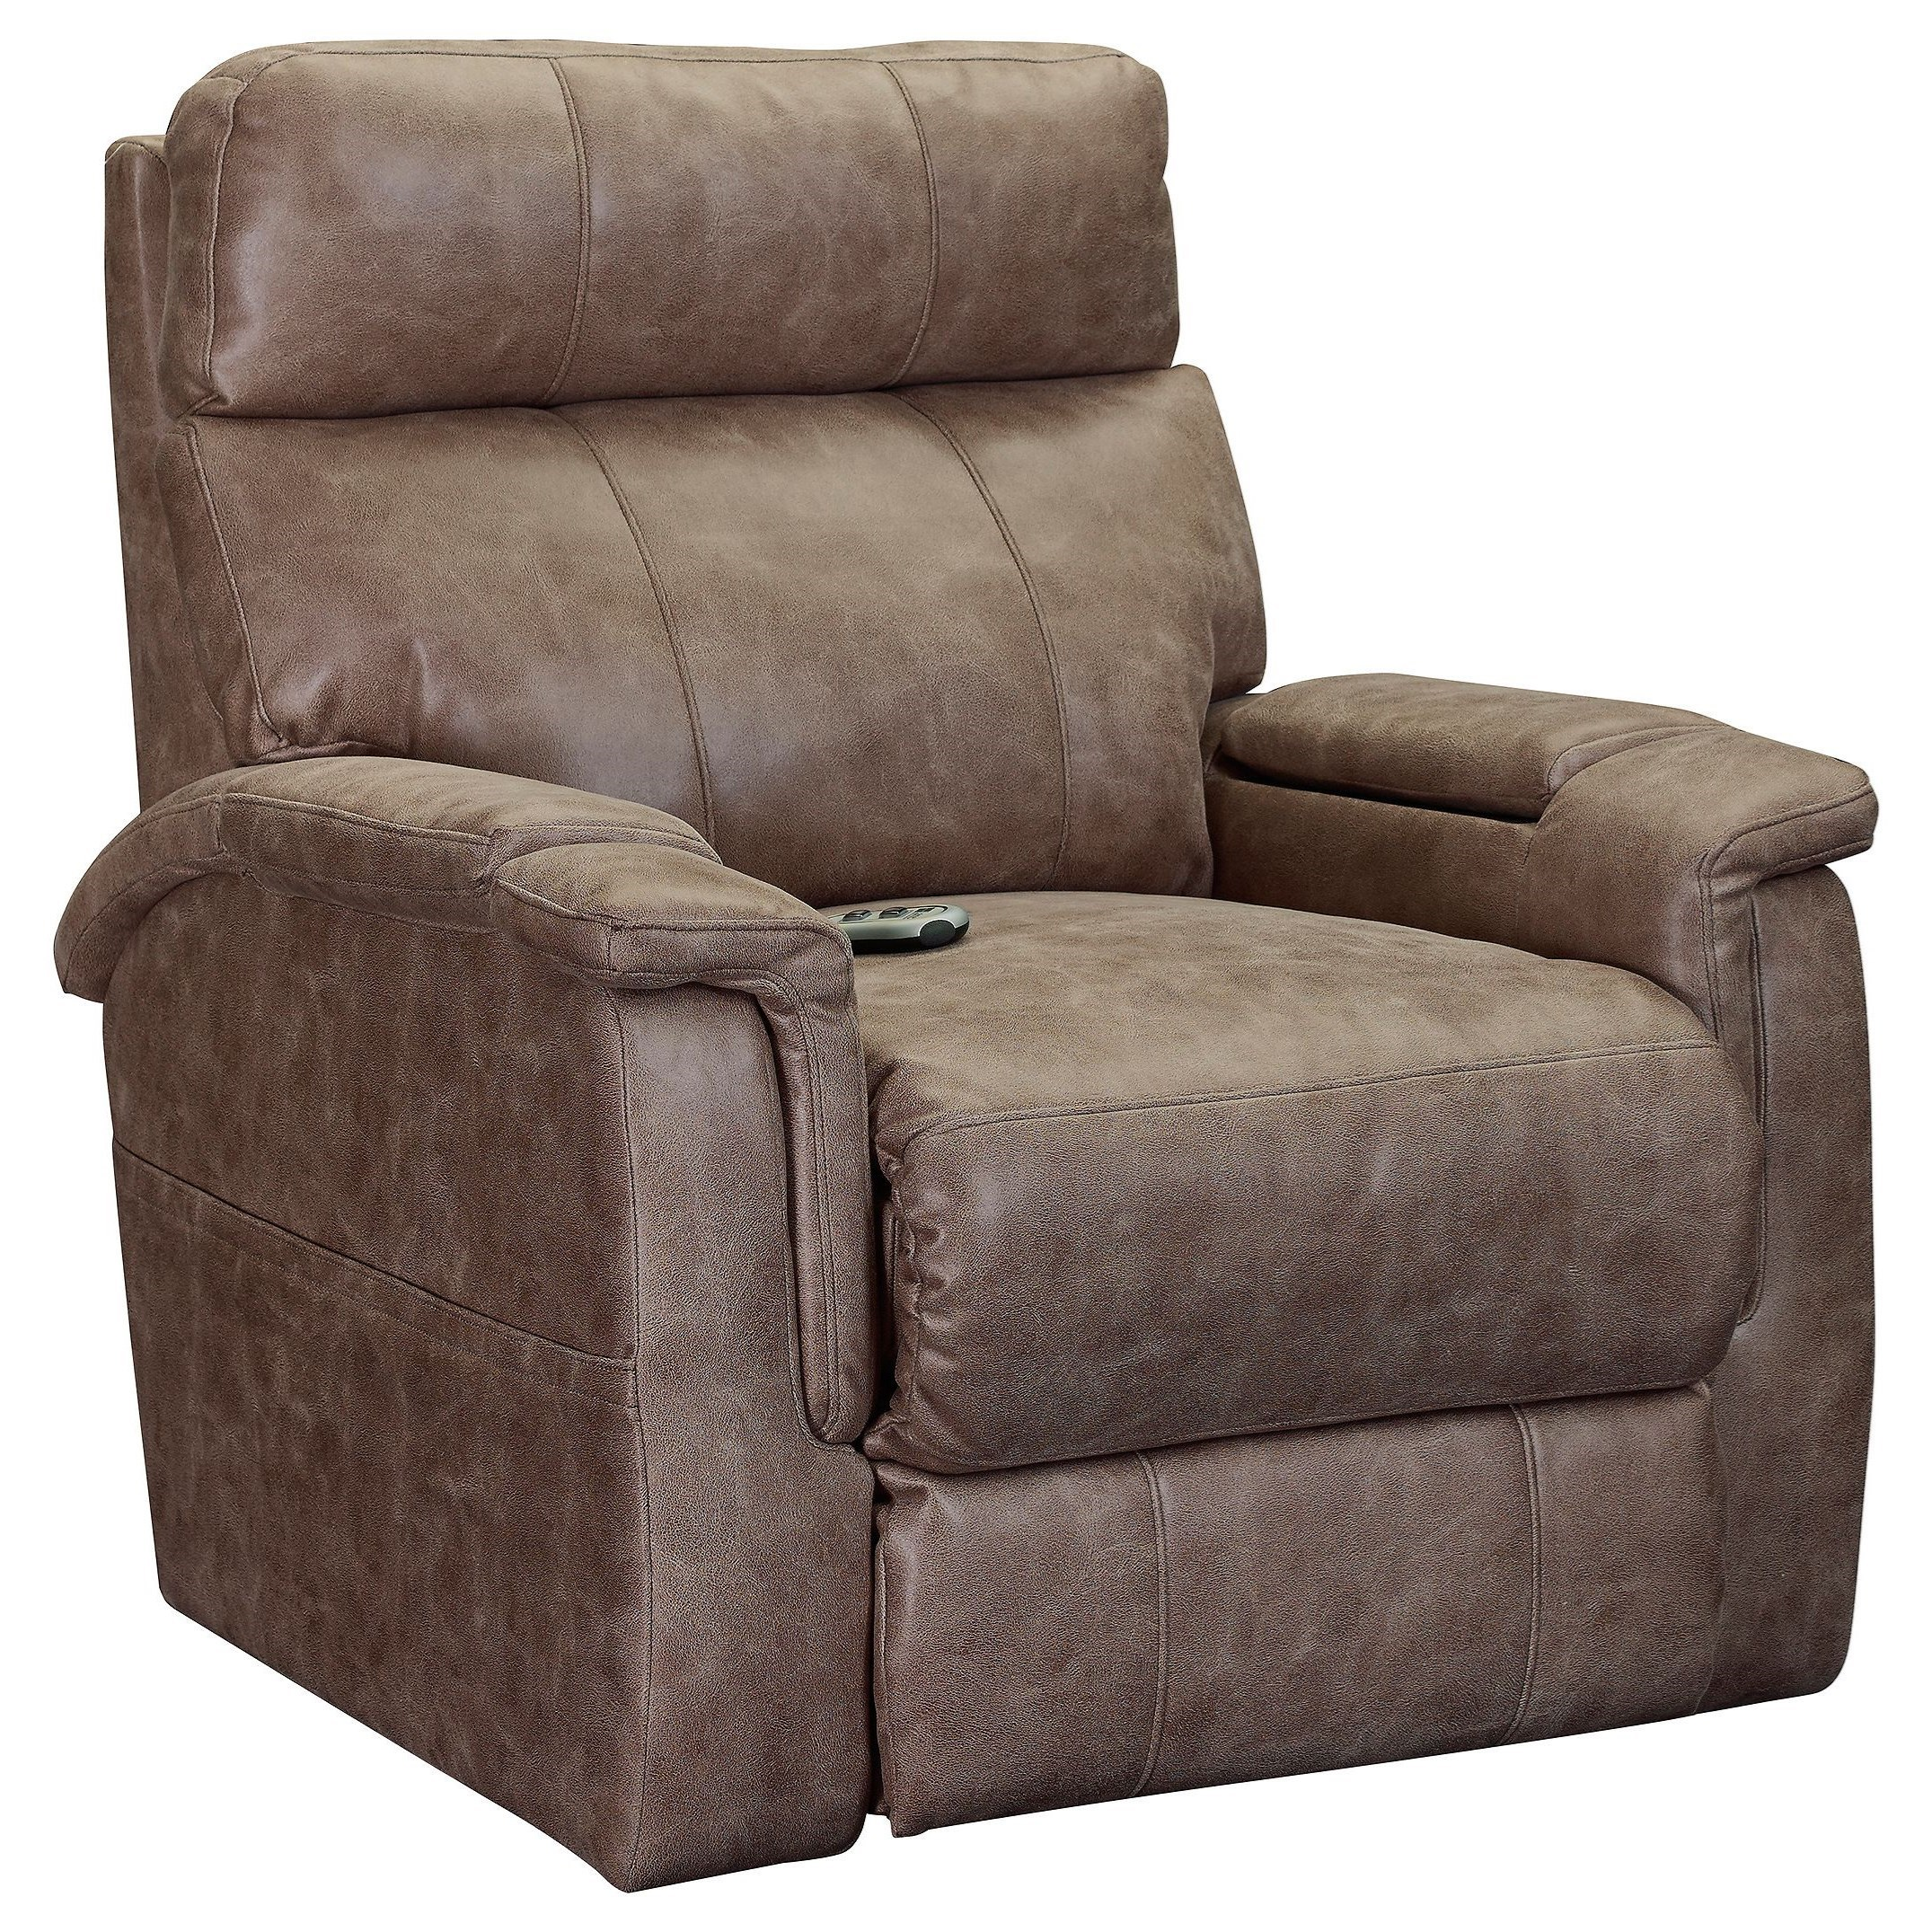 power lift chair repair osaki massage dealers lane kaili 18587 recliner with remote control